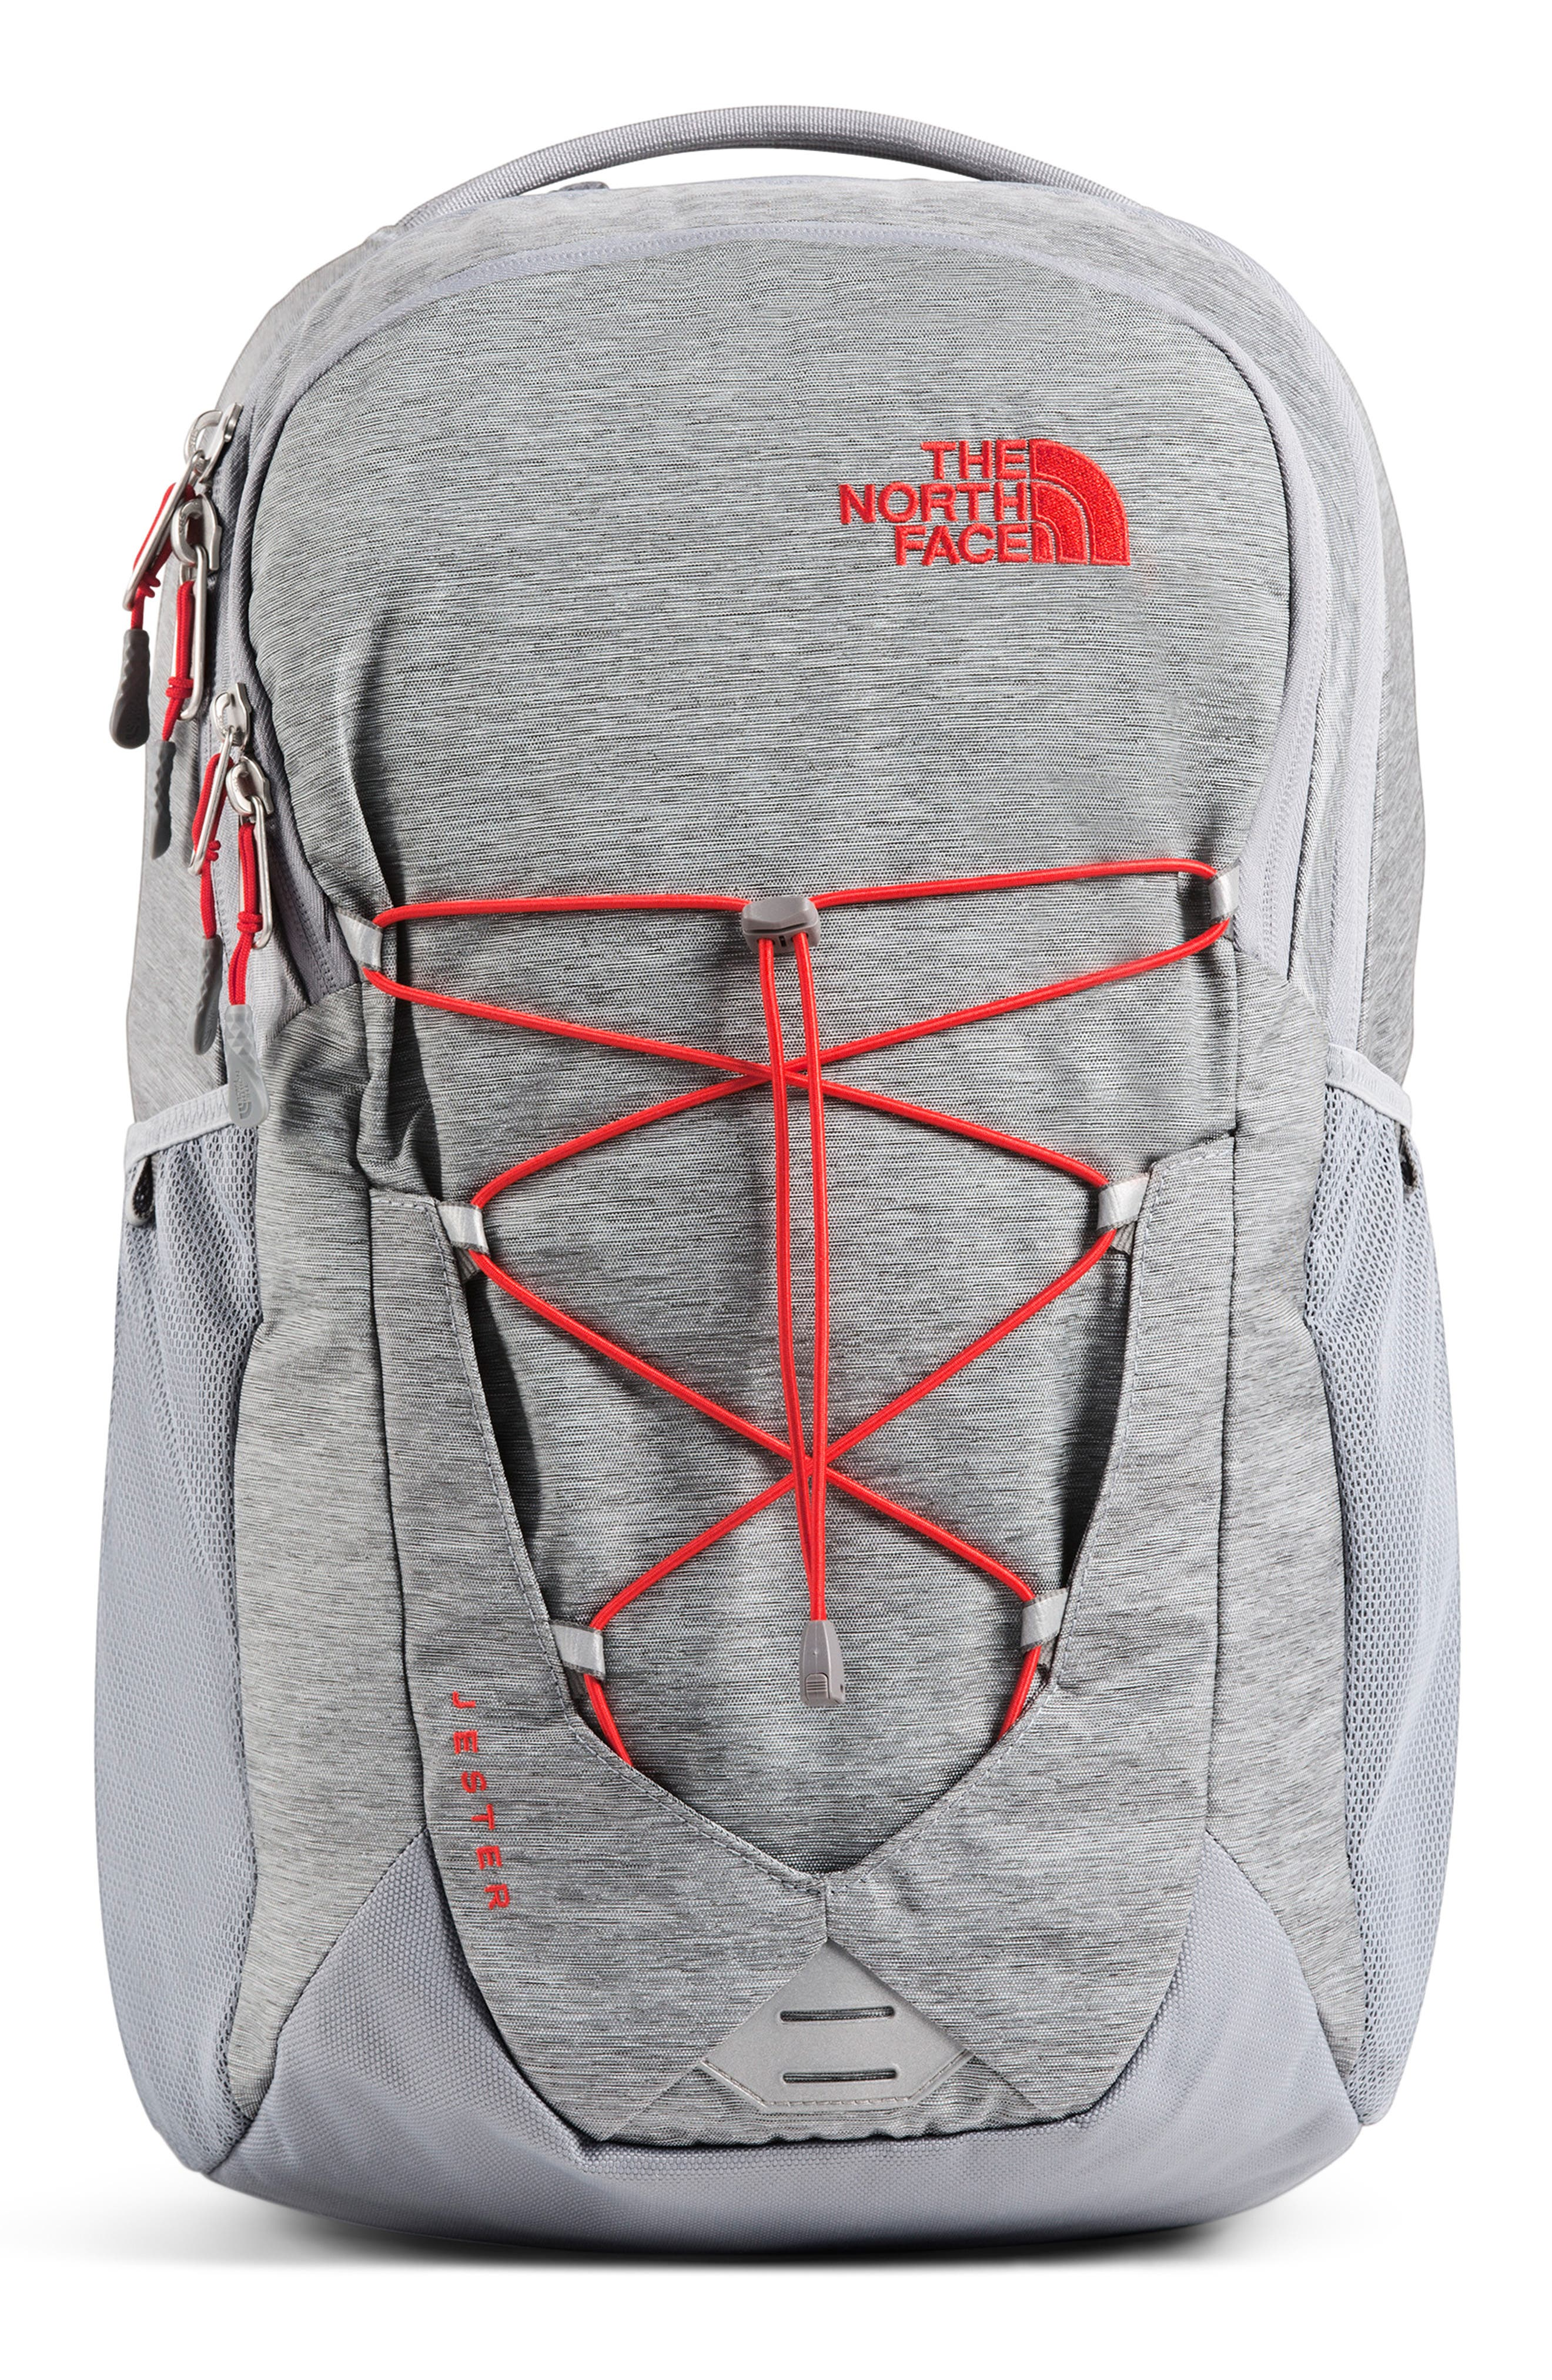 THE NORTH FACE, Jester Backpack, Main thumbnail 1, color, GREY DARK HEATHER/FIERY RED